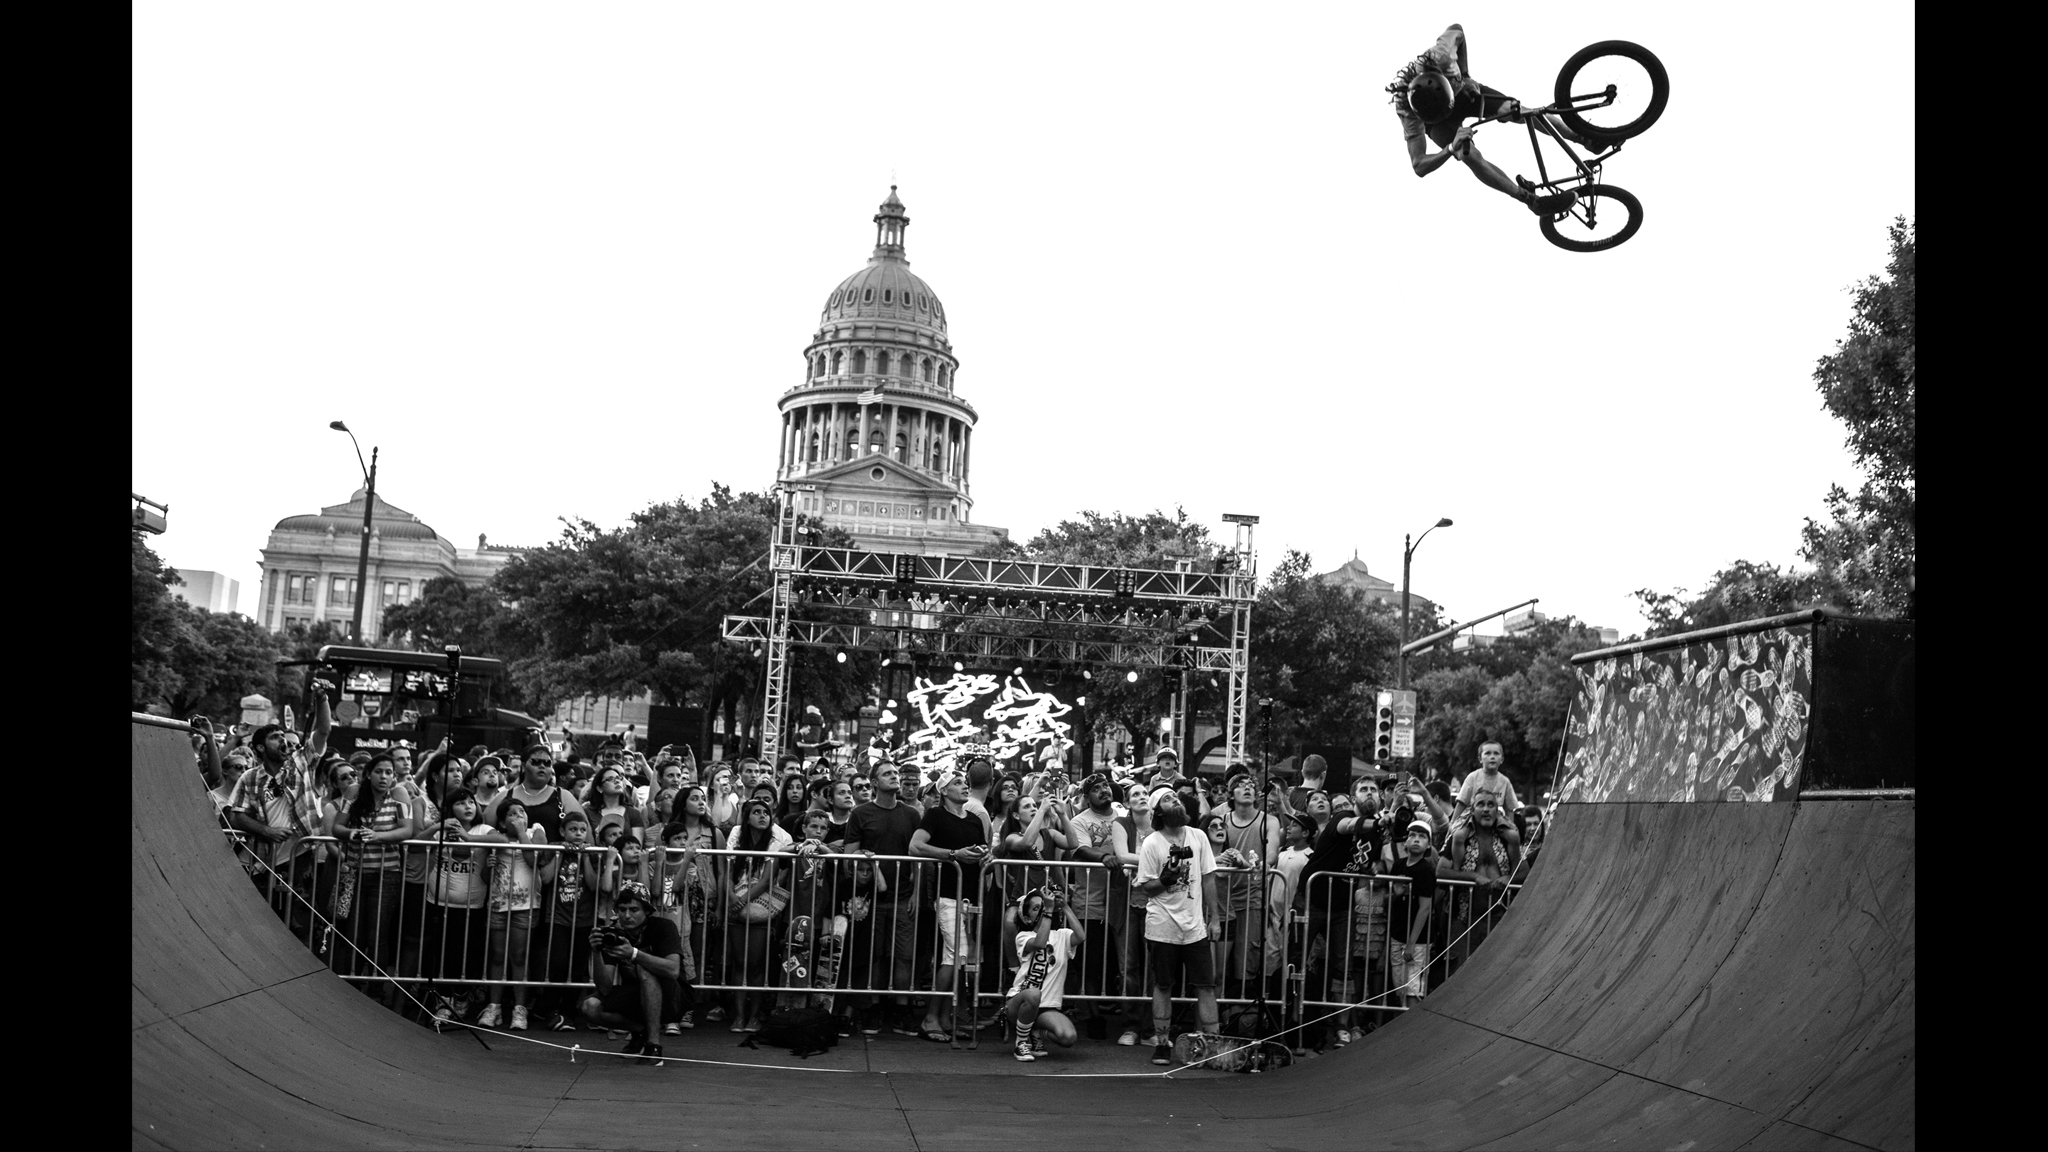 X Games BMX Park competitor Tom Dugan airs near the State Capitol building in Austin, Texas at an X Games rally in June.